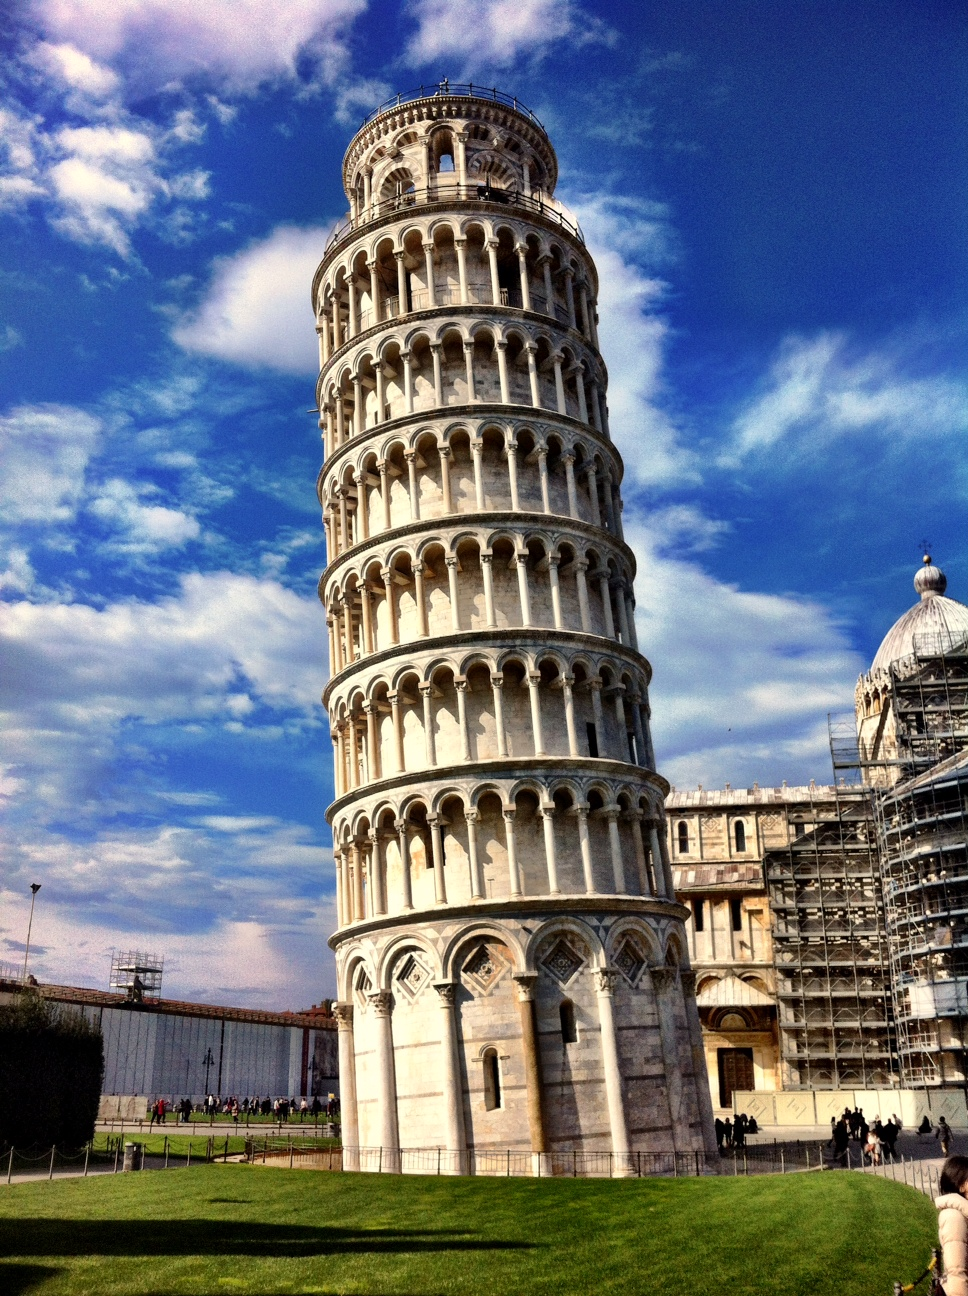 Life the leaning tower of pisa - Leaning tower of pisa ...